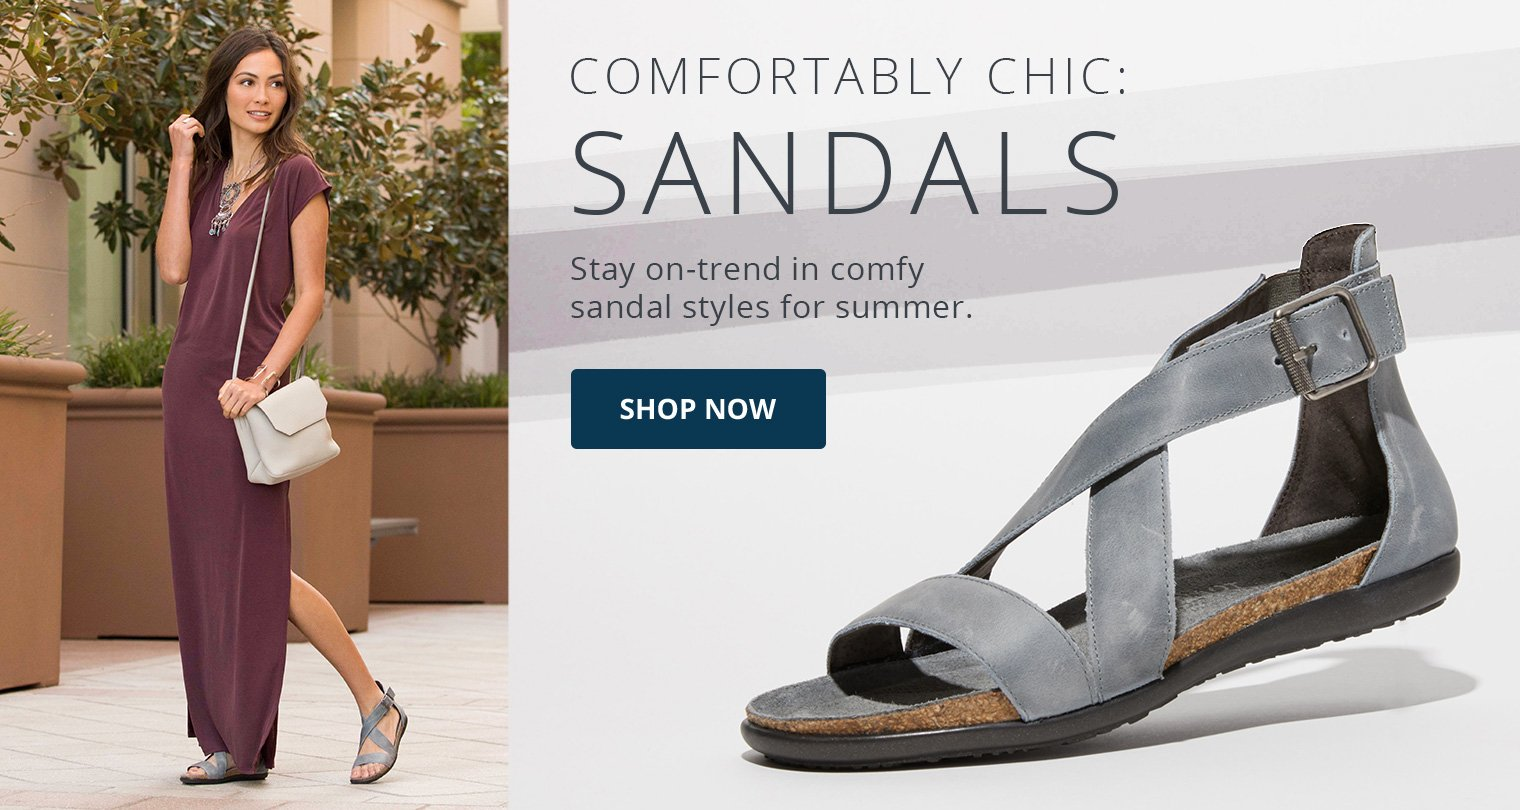 COMFORTABLY CHIC: SANDALS. Stay on-trend in comfy sandal styles for summer. SHOP NOW